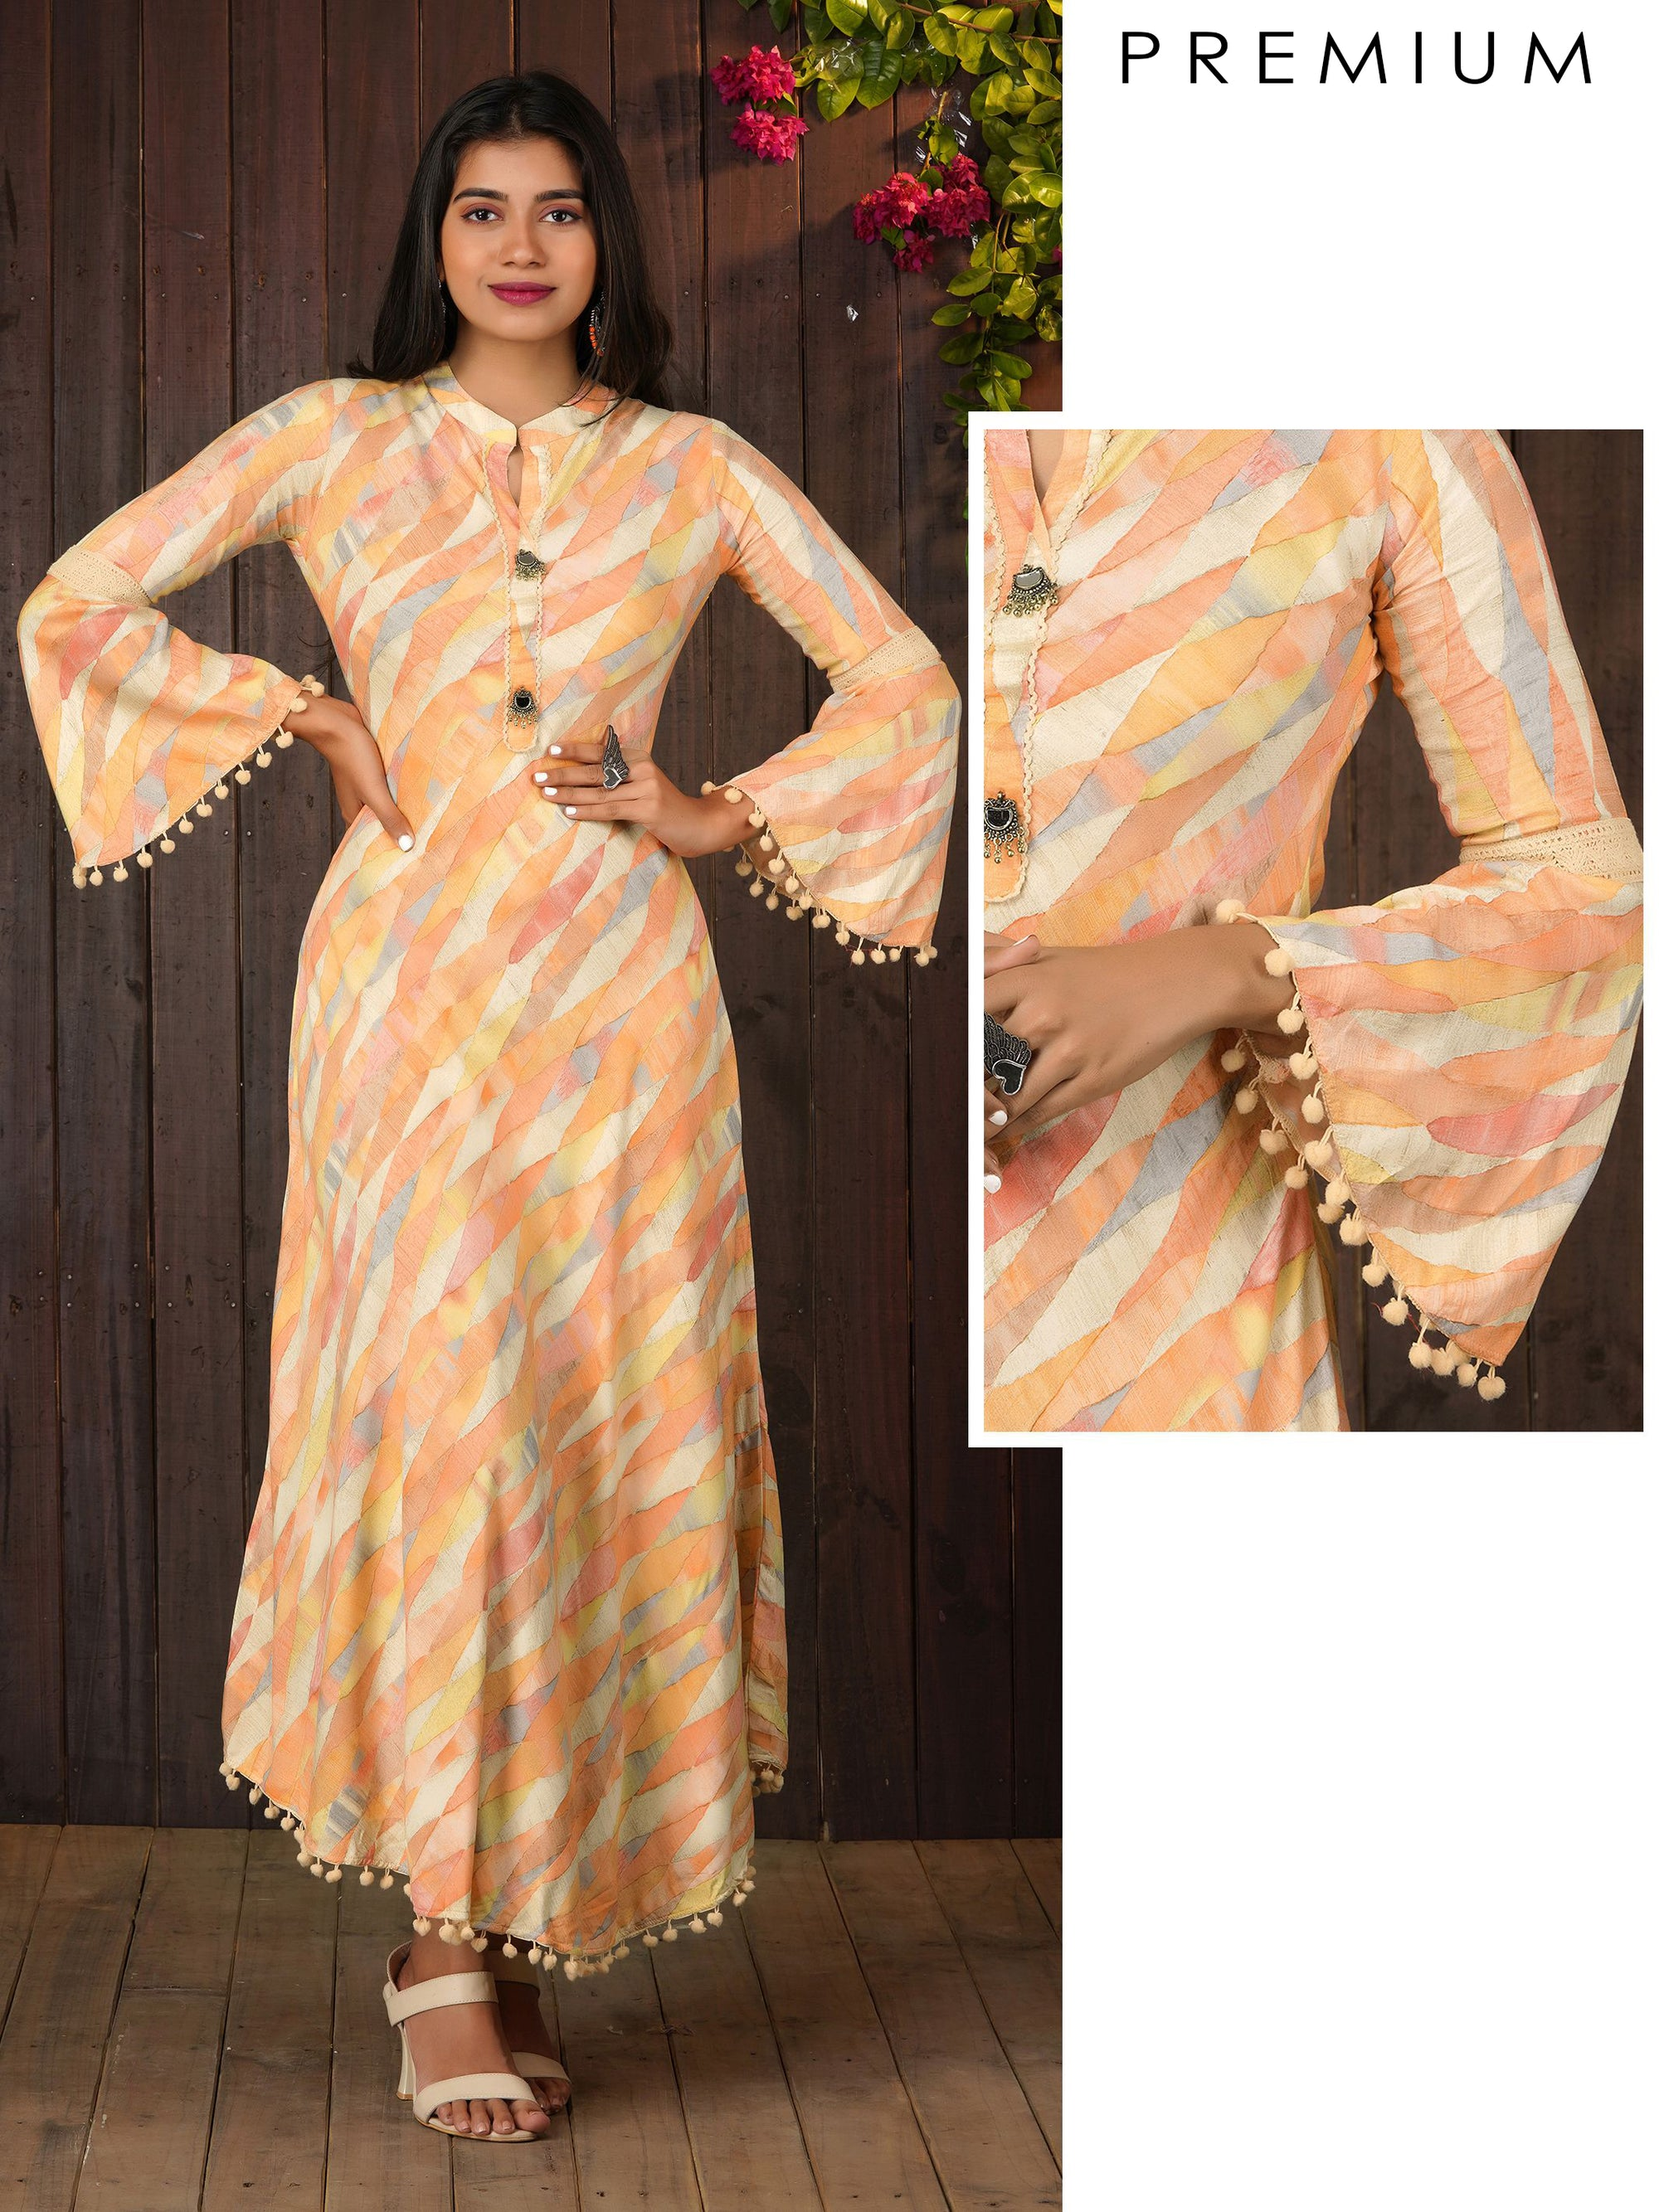 Abstract Printed Bias Cut Maxi With Bell Sleeves - Peach